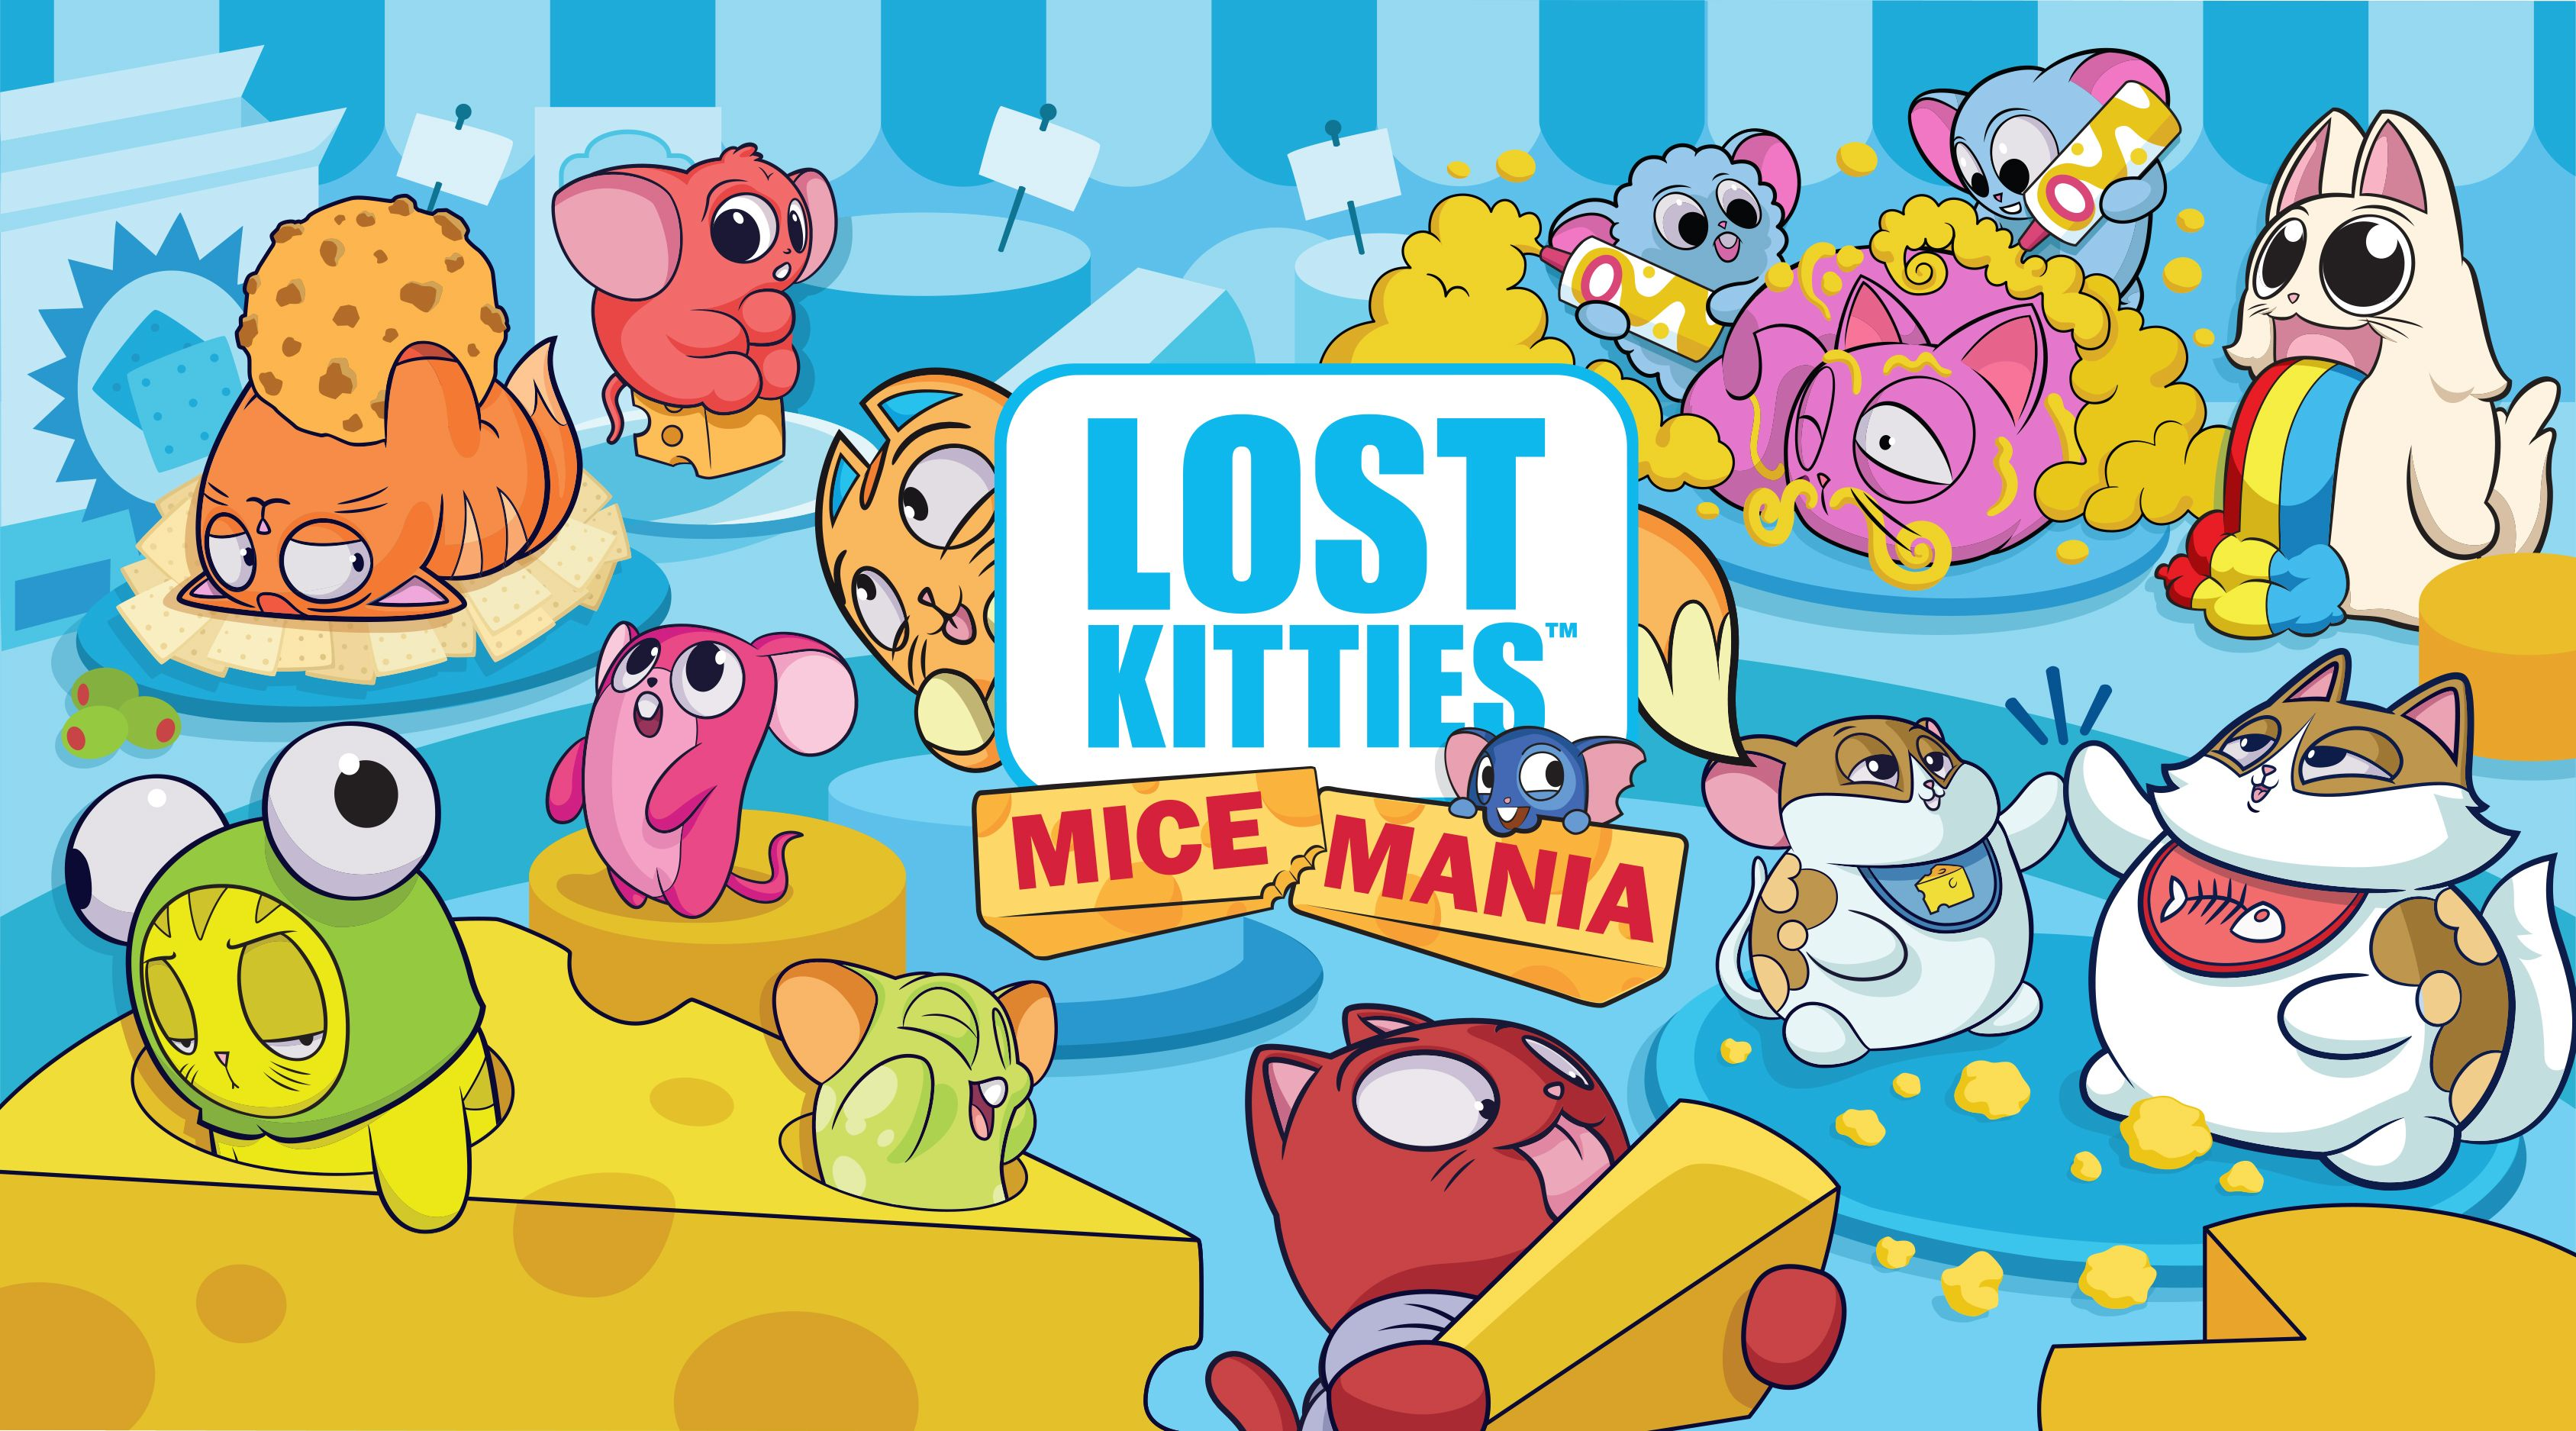 Hasbro Is Bringing Lost Kitties Mice Mania to Stores This